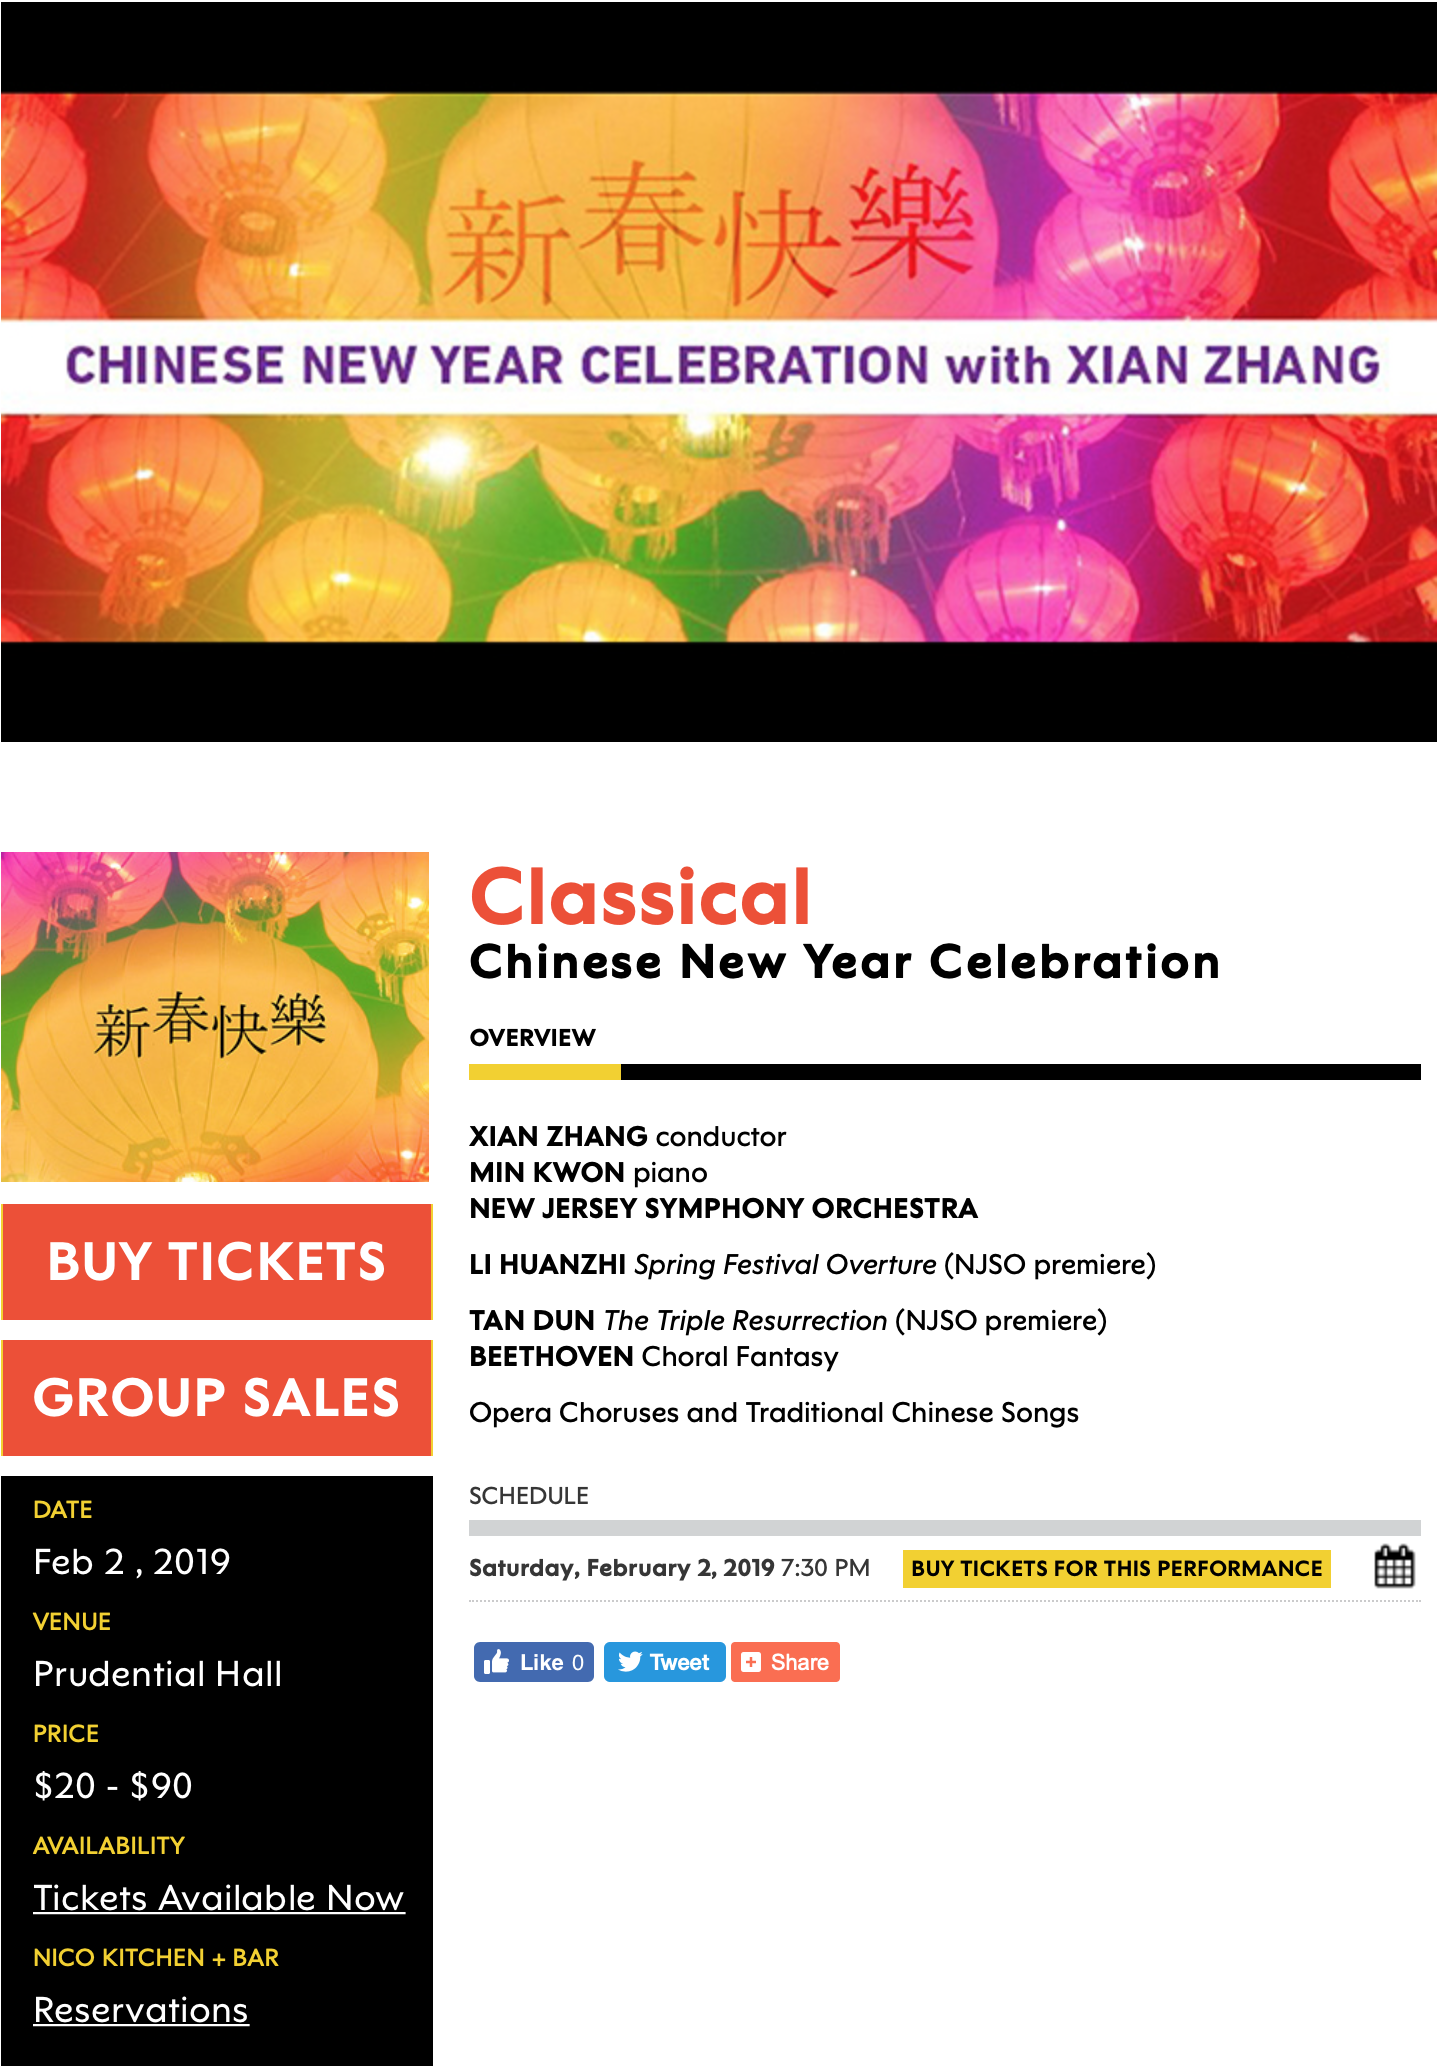 To celebrate Chinese New Year, the New Jersey Symphony Orchestra will be having a traditional Chinese themed concert on February 2, 2019 at 7:30 pm at the NJPAC in Newark. Ticket price ranges from $20-$90, and group discounts are available.